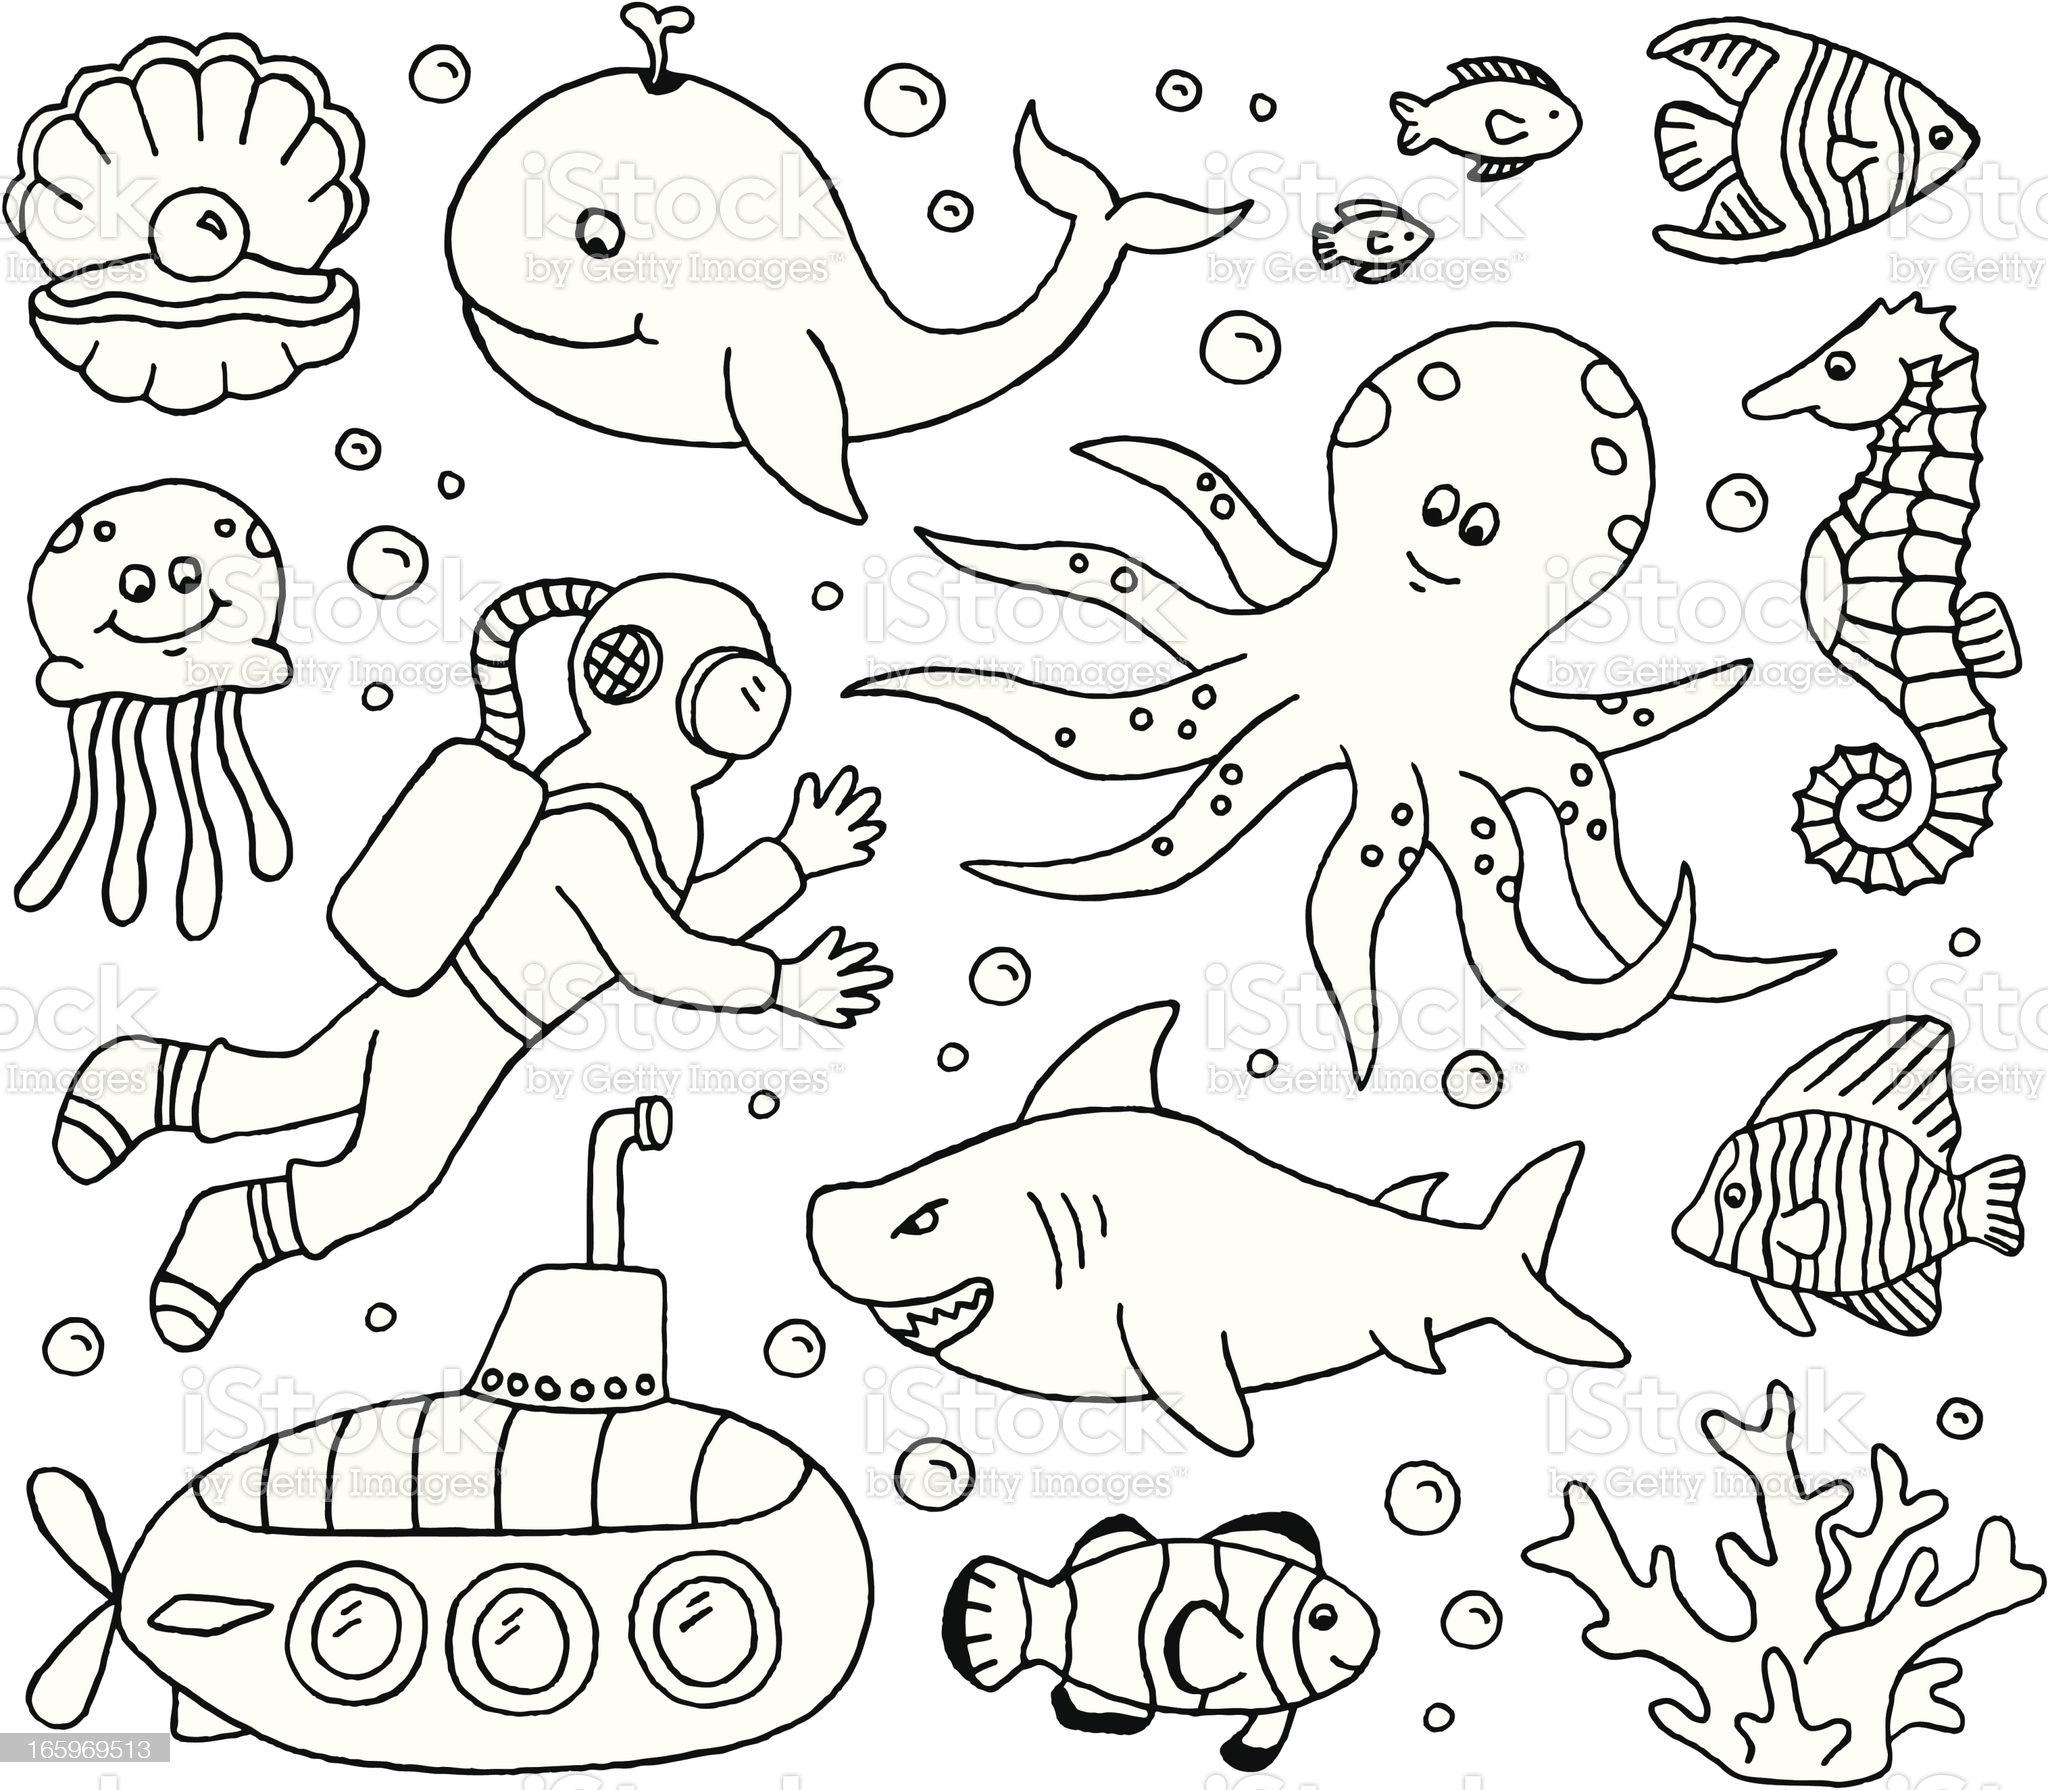 Under the Sea Doodles royalty-free stock vector art